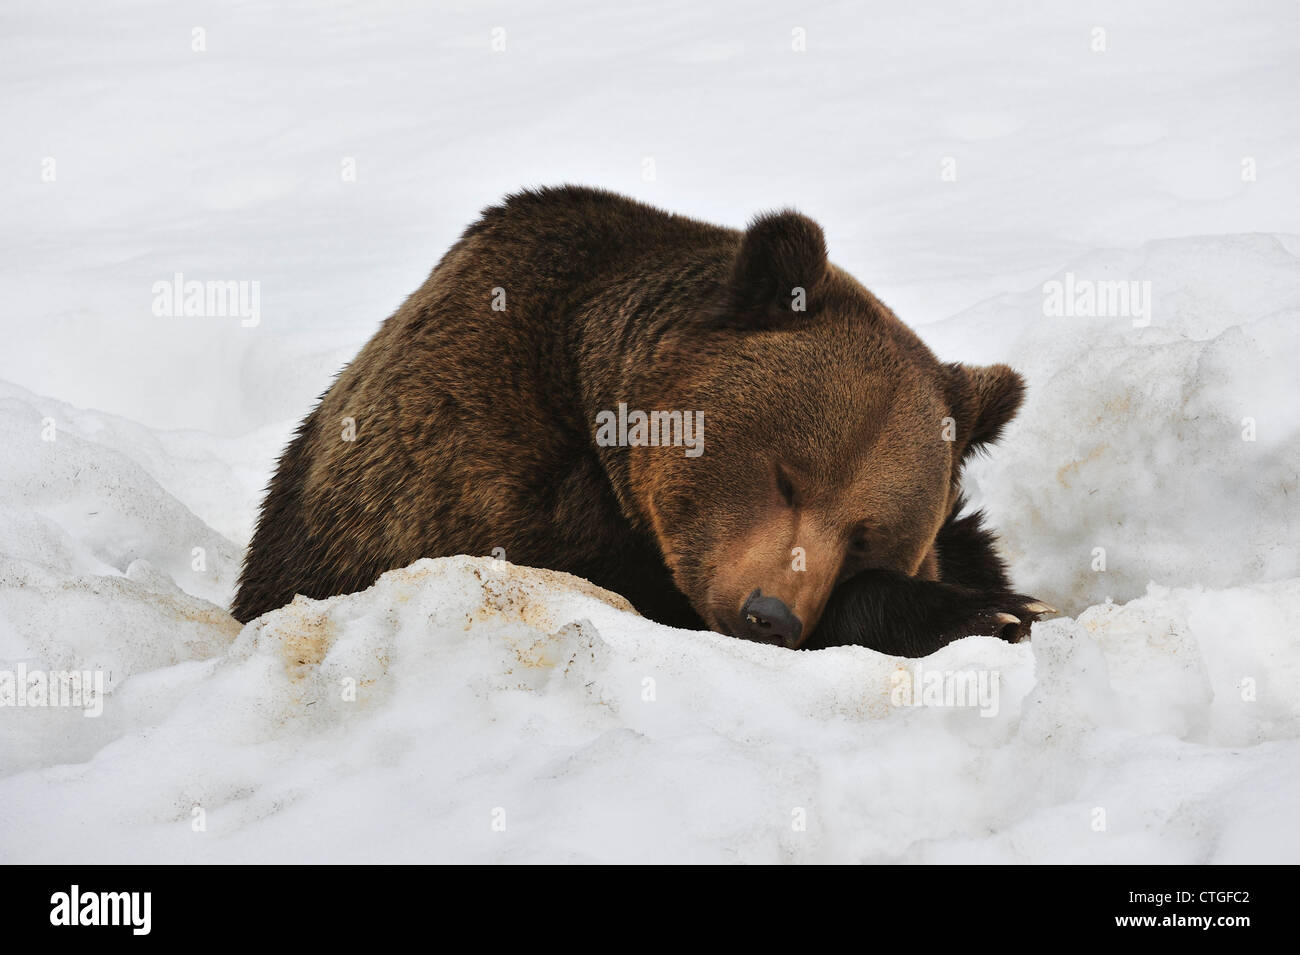 Eurasian brown bear (Ursus arctos arctos) sleeping in the snow in early spring after waking up from hibernating - Stock Image